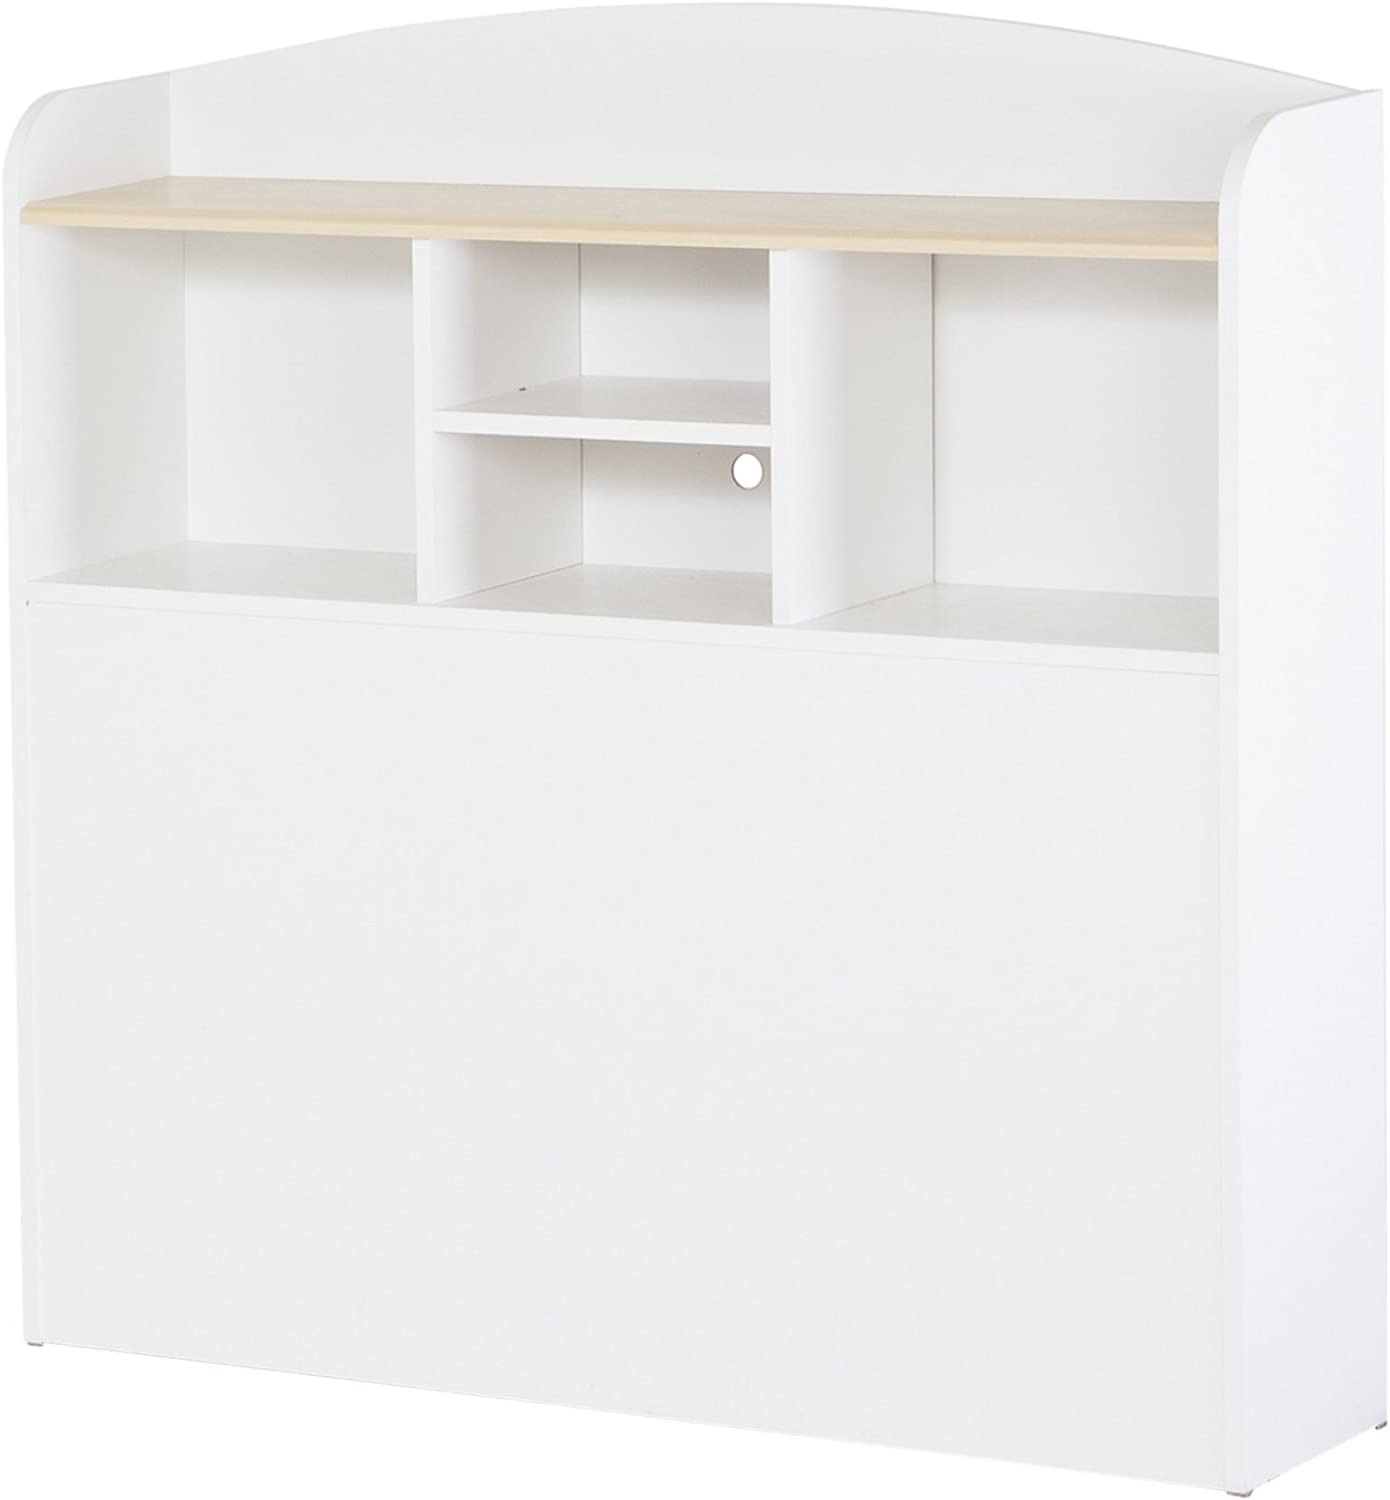 South Shore Furniture, Summertime Collection, Bookcase Headboard 39-Inch, Pure white and Natural Maple